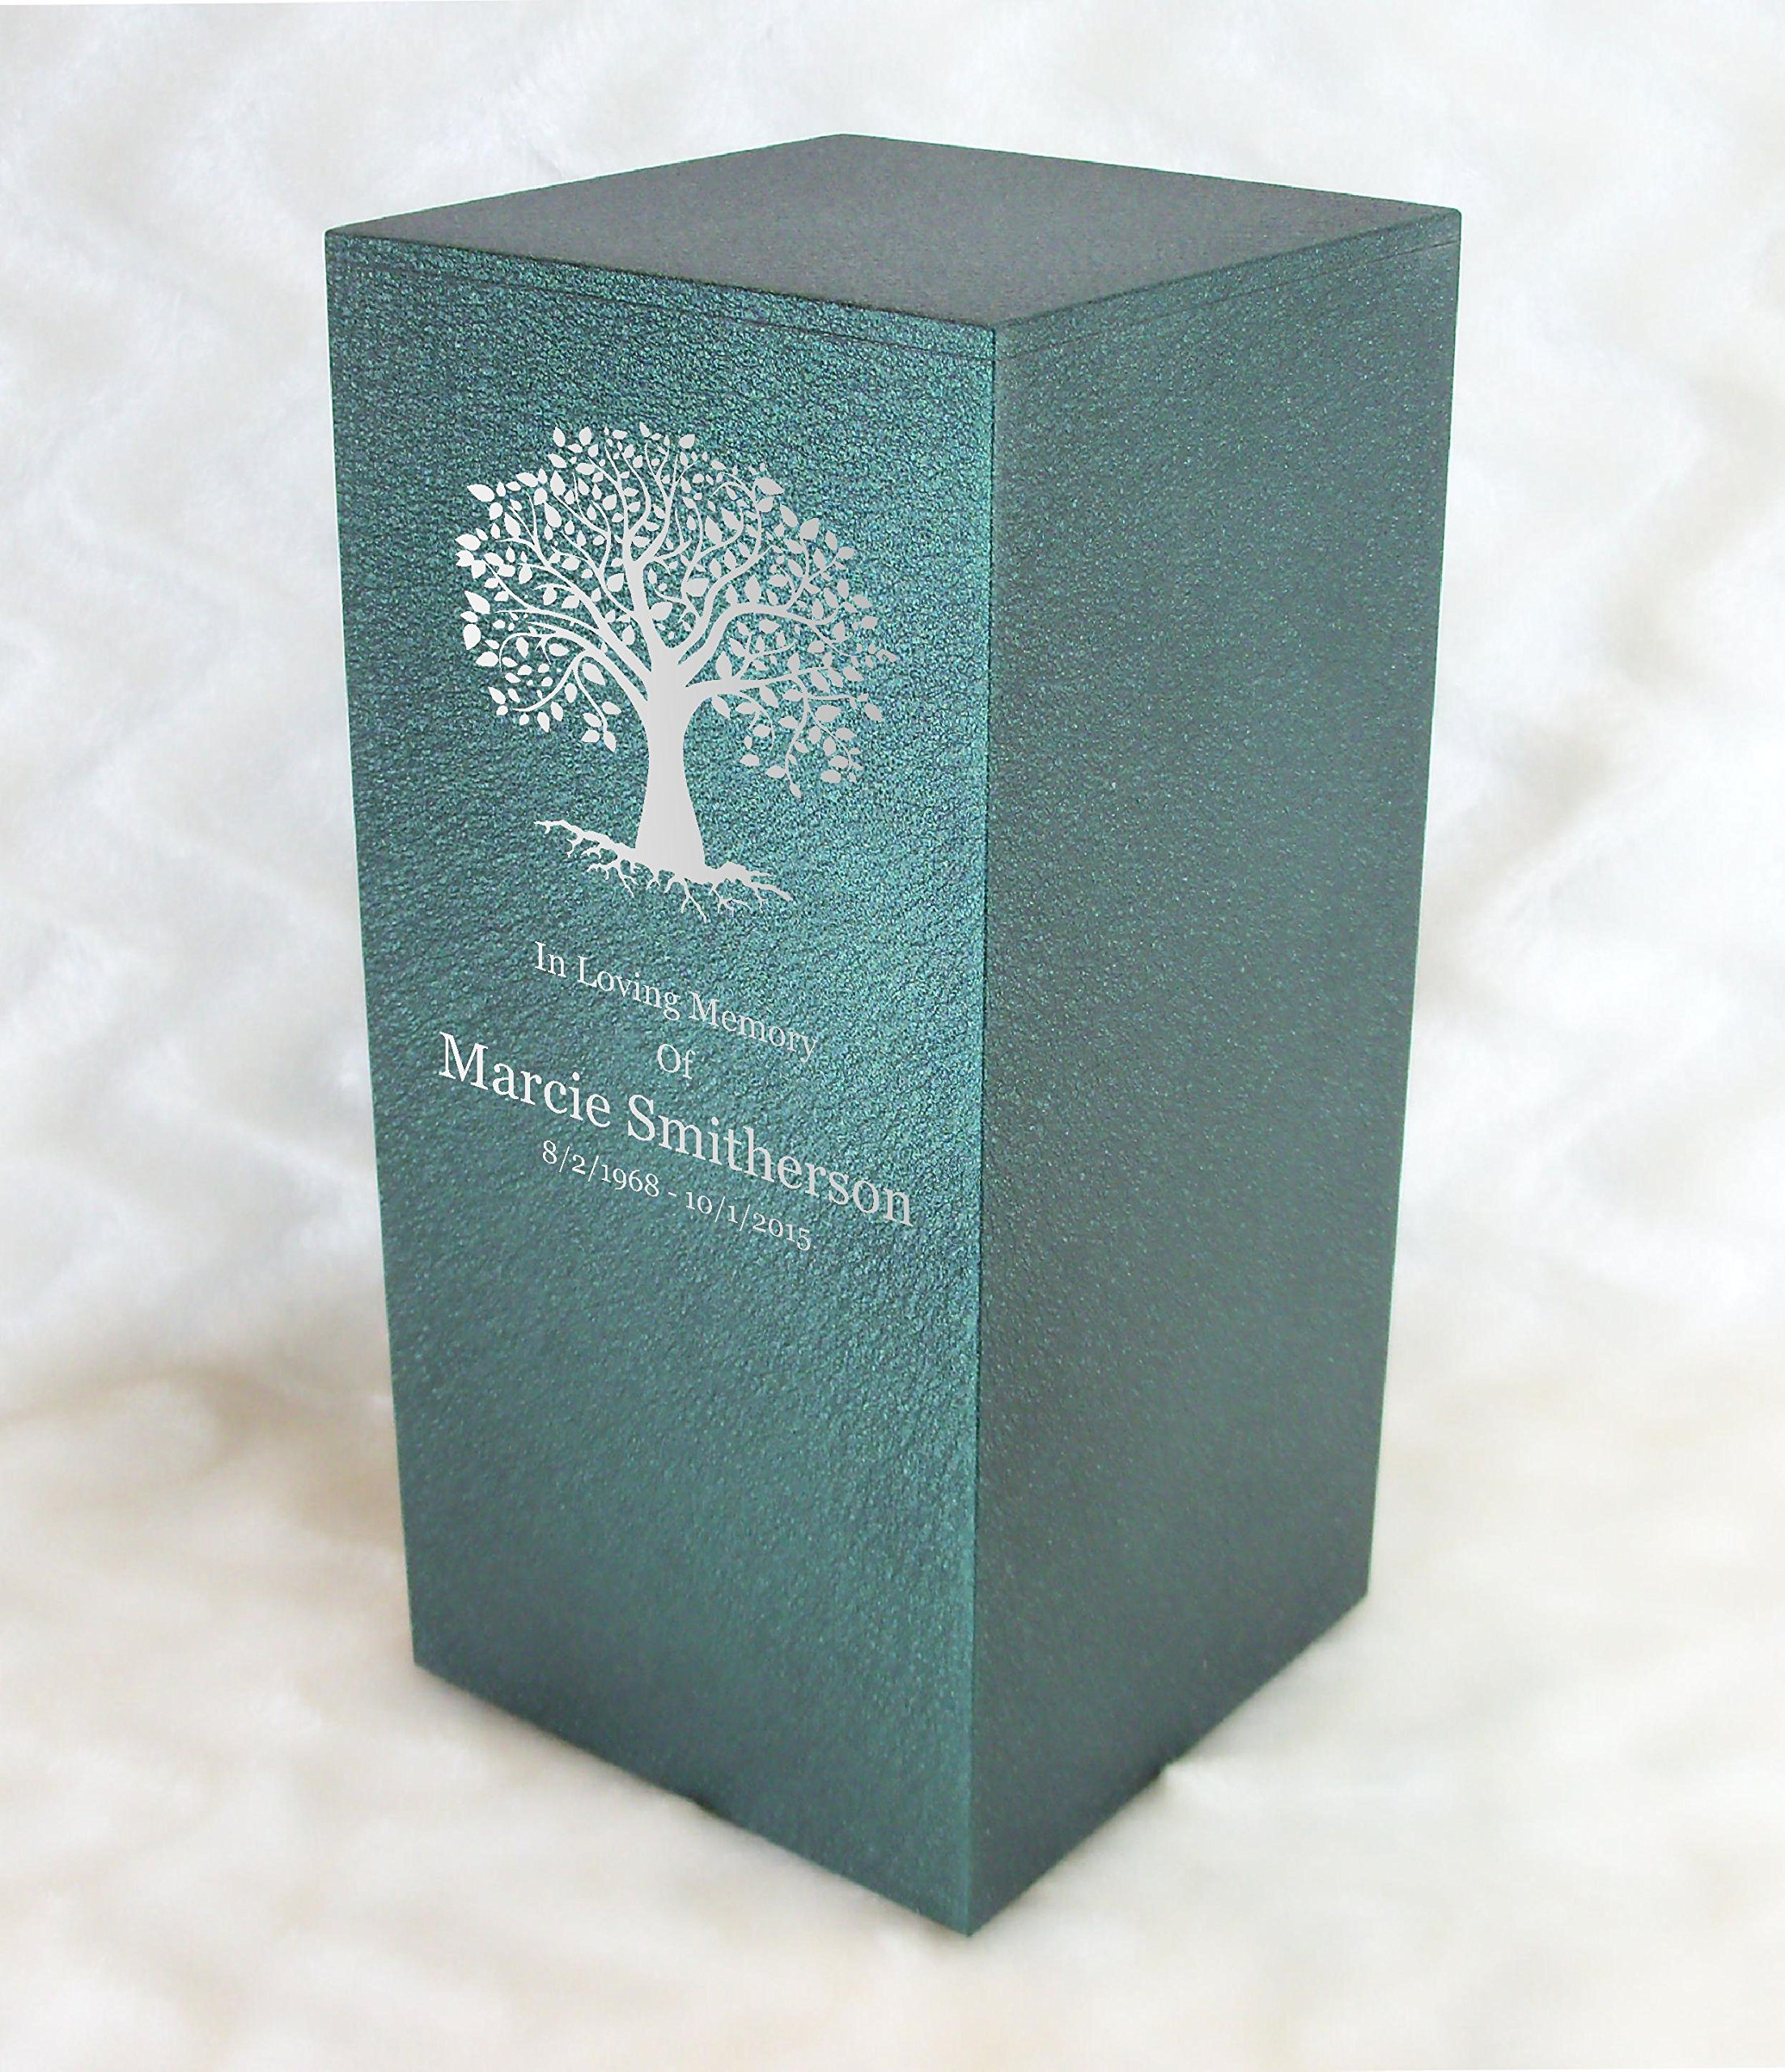 PERSONALIZED Engraved Tree of Life Cremation Urn for Human Ashes -Made in America- Handcrafted in the USA by Amaranthine Urns, Adult Funeral Urn -Eaton DL (up to 200 lbs living weight) (Forest Green) by Amaranthine Urn Company